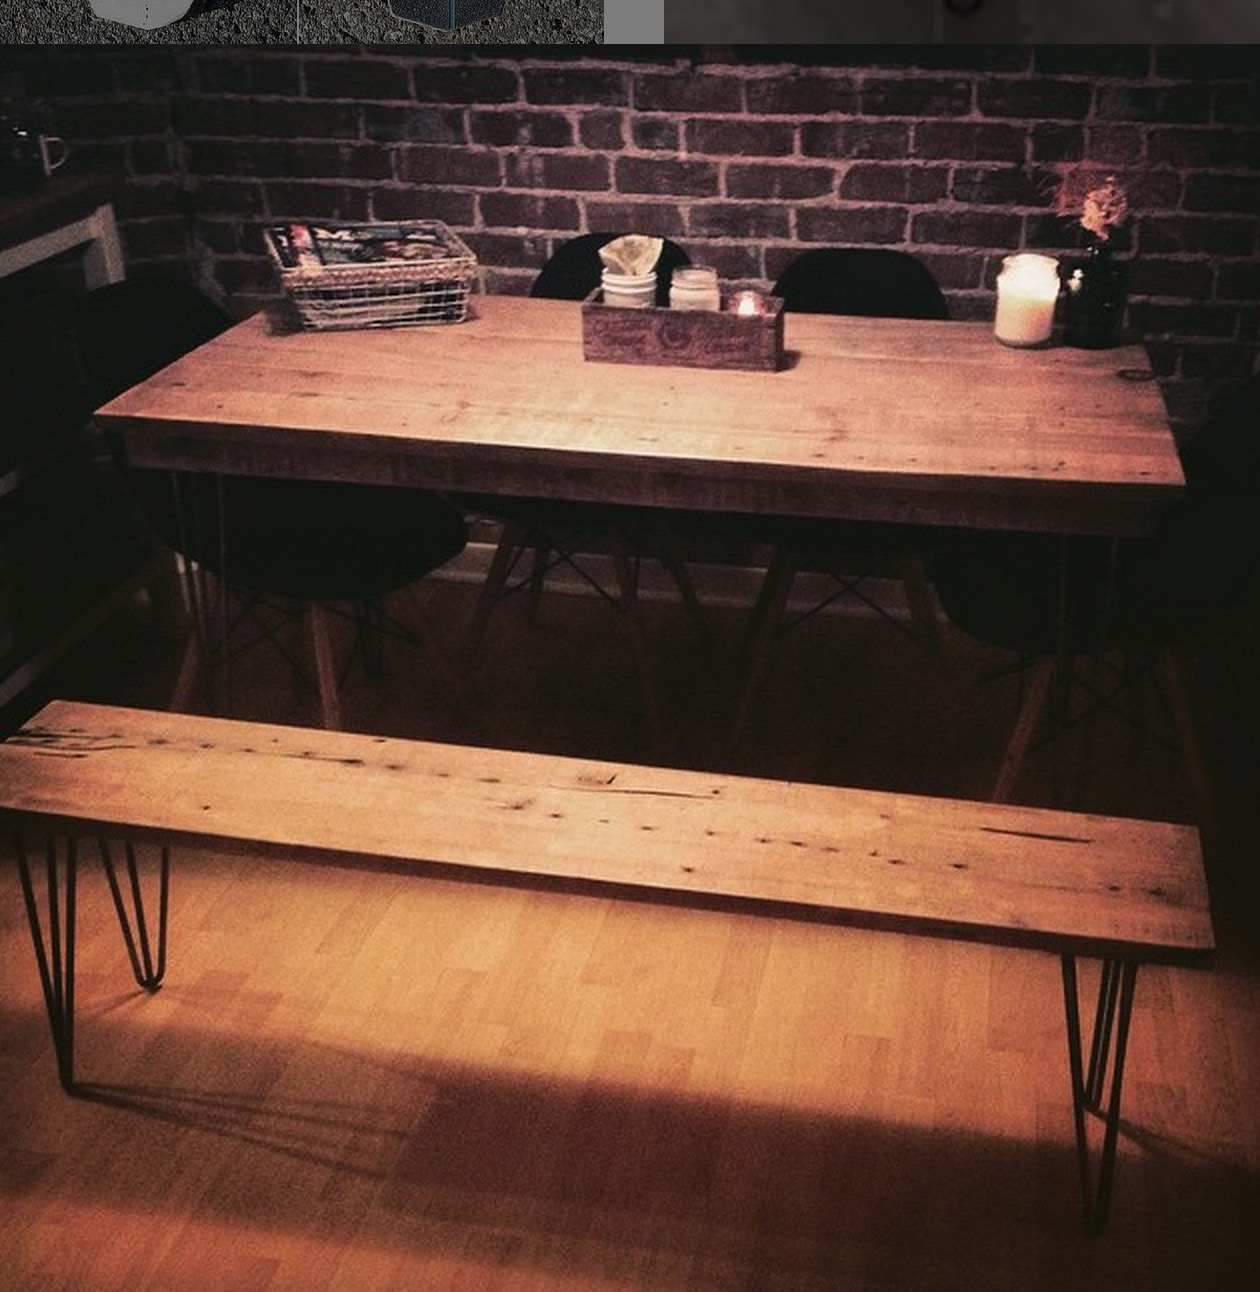 Industric-MTL-TABLE-Montreal-08